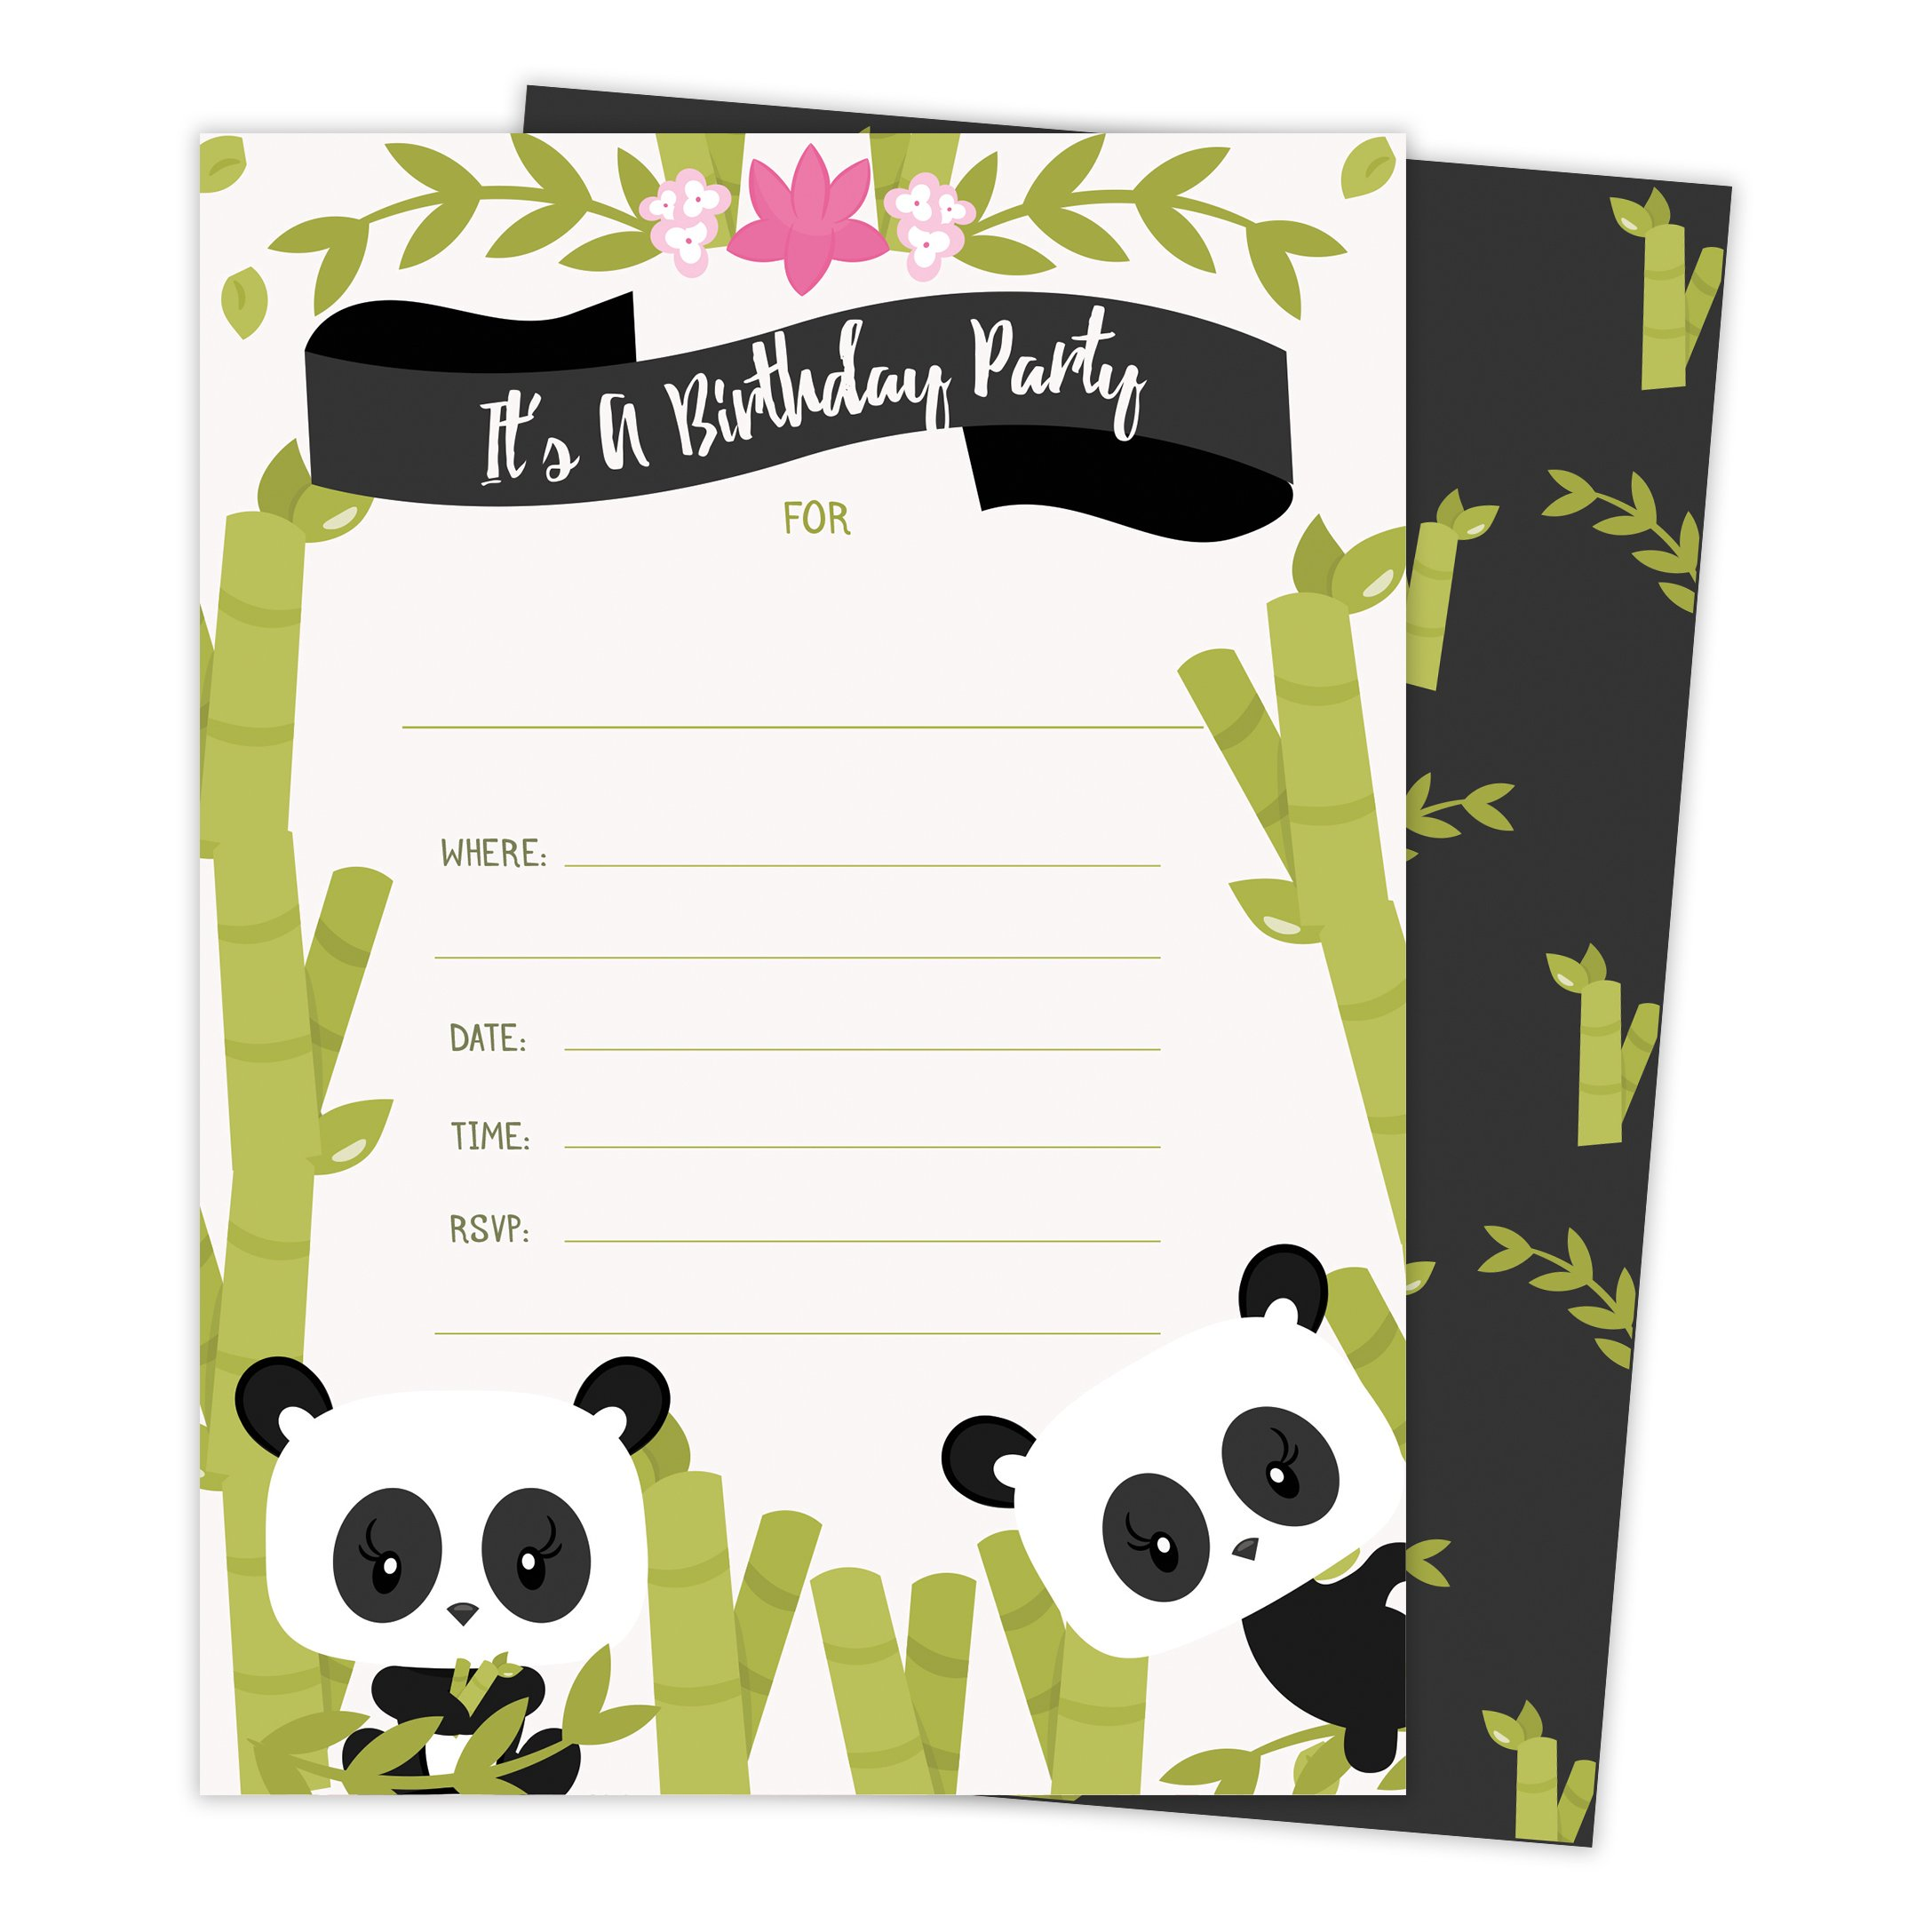 Panda Happy Birthday Invitations Invite Cards (25 Count) with Envelopes and Seal Stickers Boys Girls Kids Party (25ct)